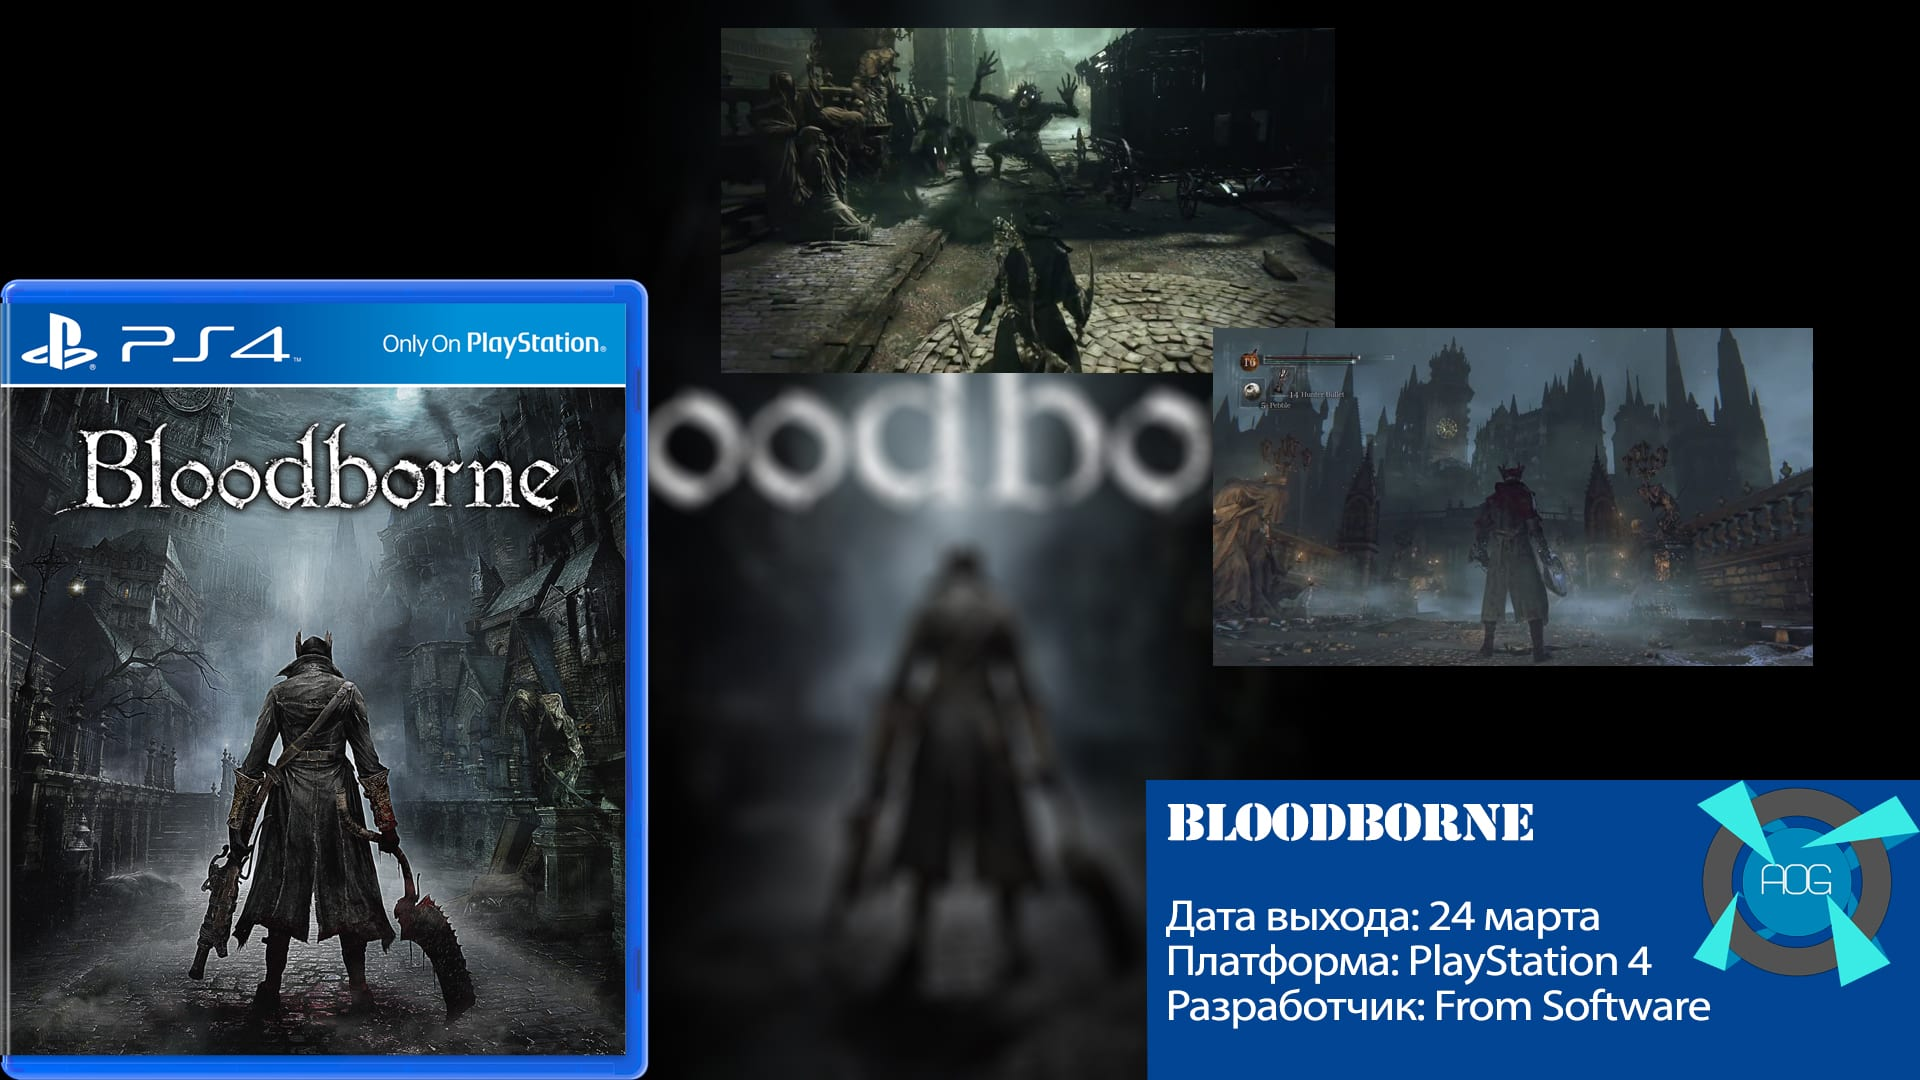 bloodborne-graphik-relizov-2015-march